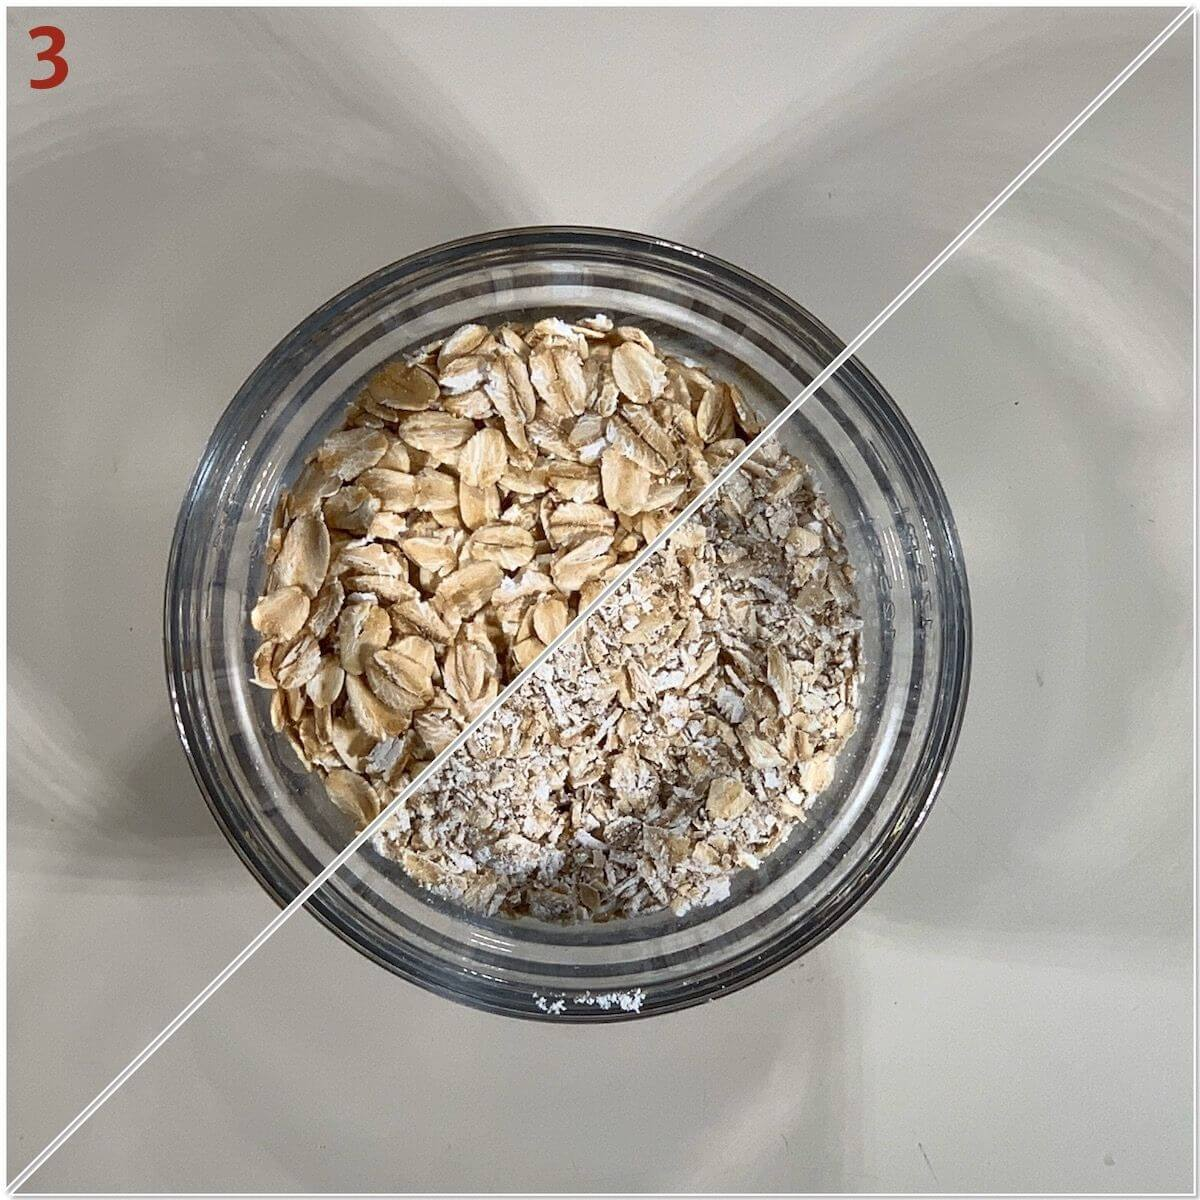 Collage of grinding oats for a streusel toppling.